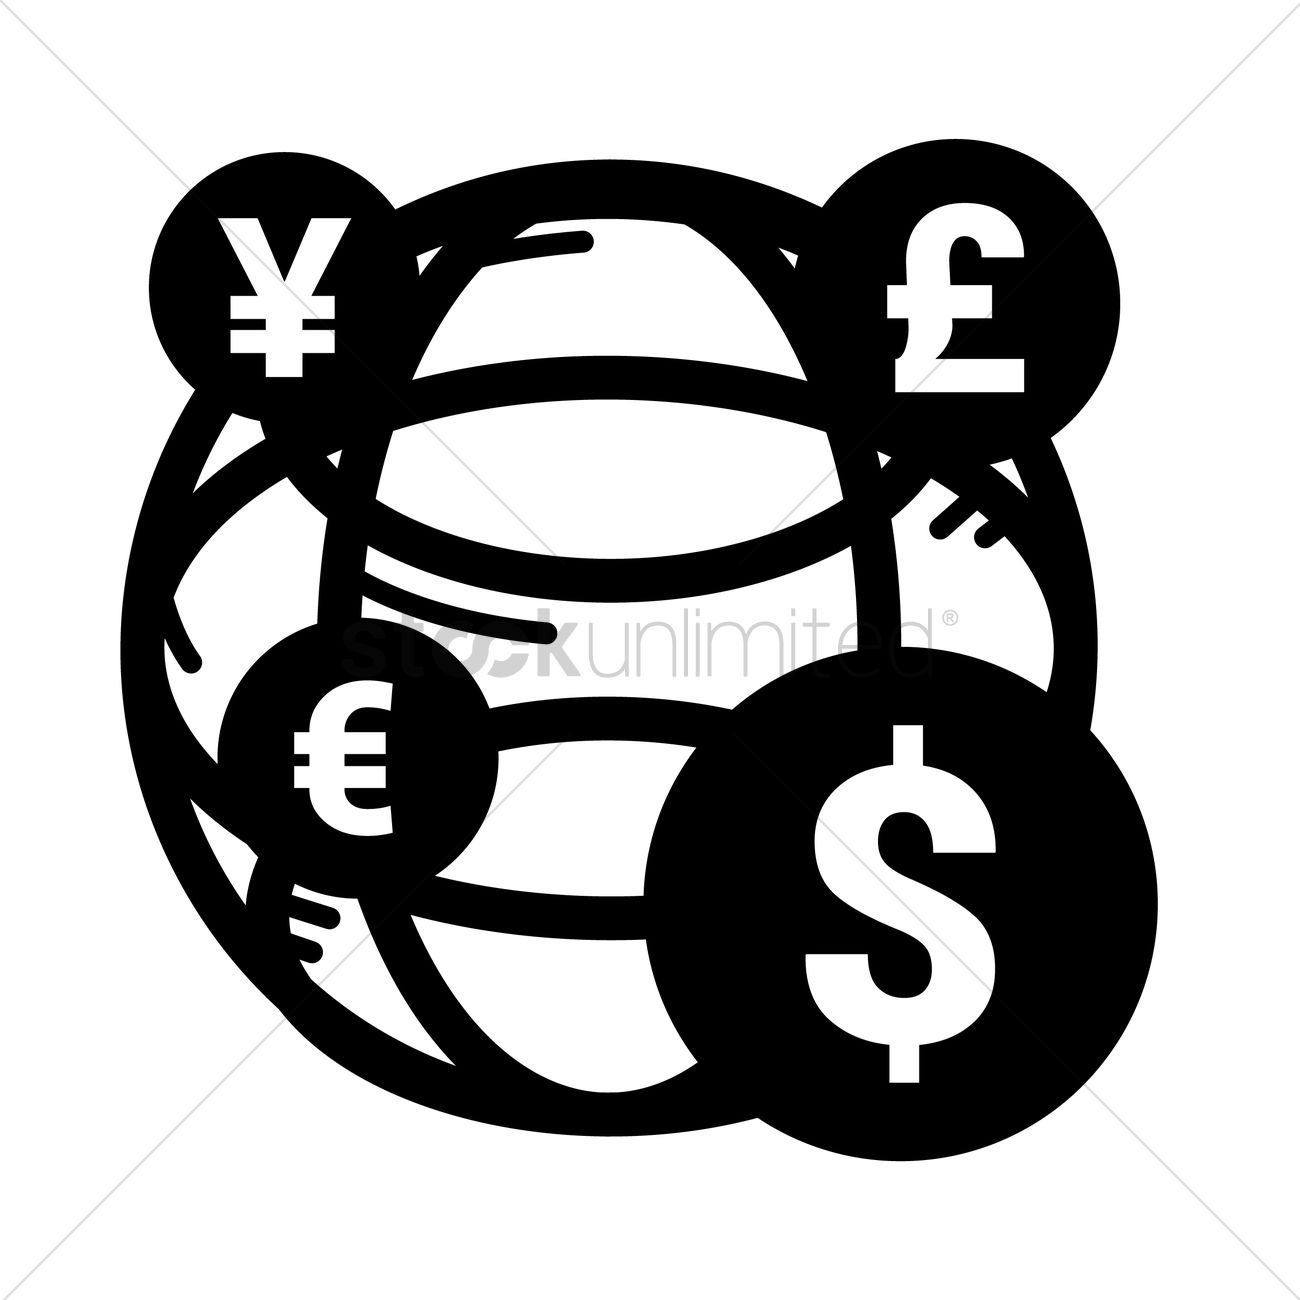 Global Currency Symbols Vector Image 1647328 Stockunlimited